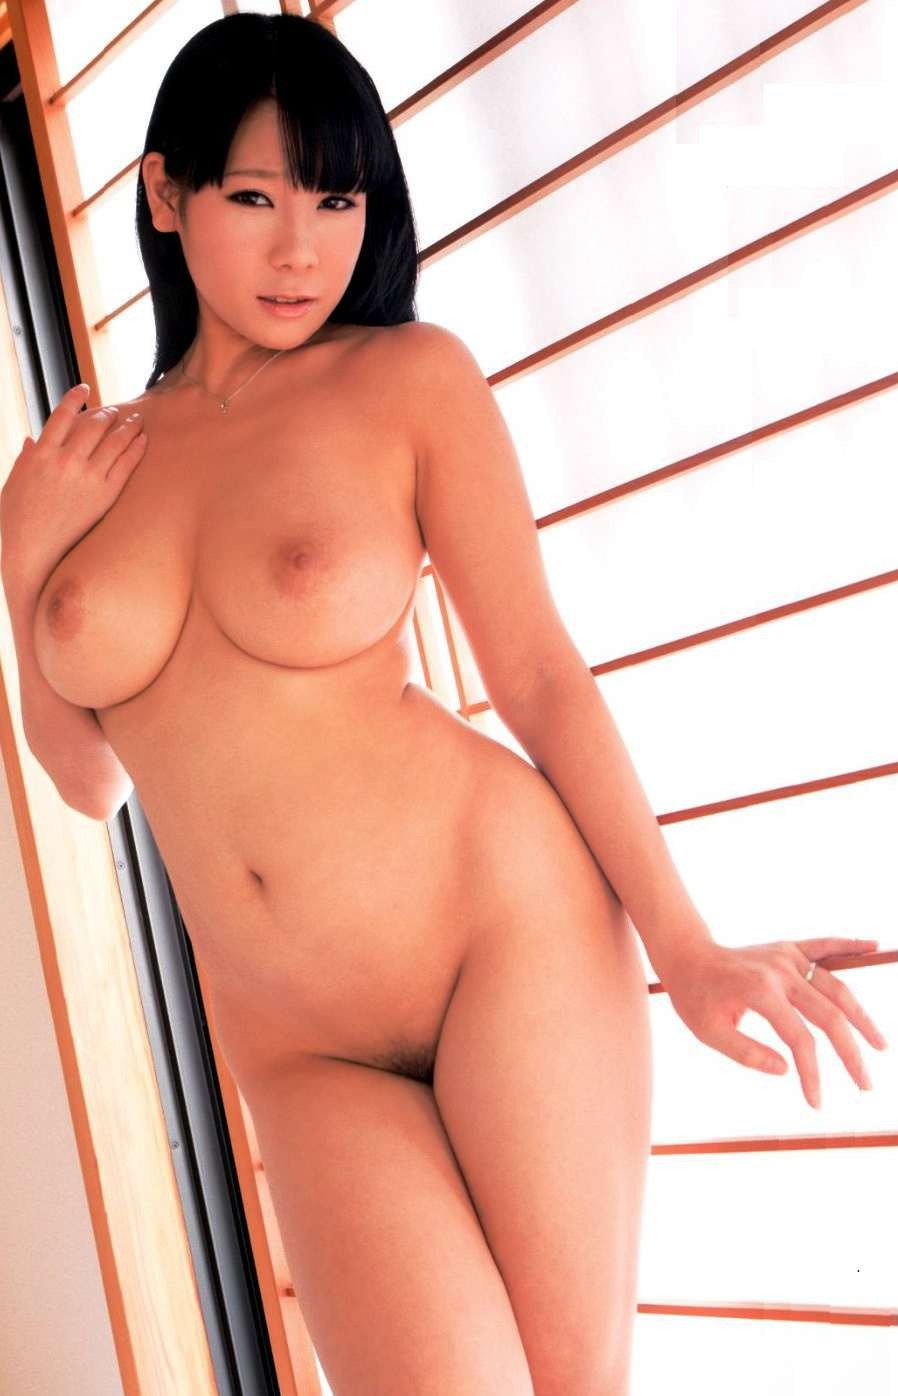 chicas escort videos fotos sexo putas